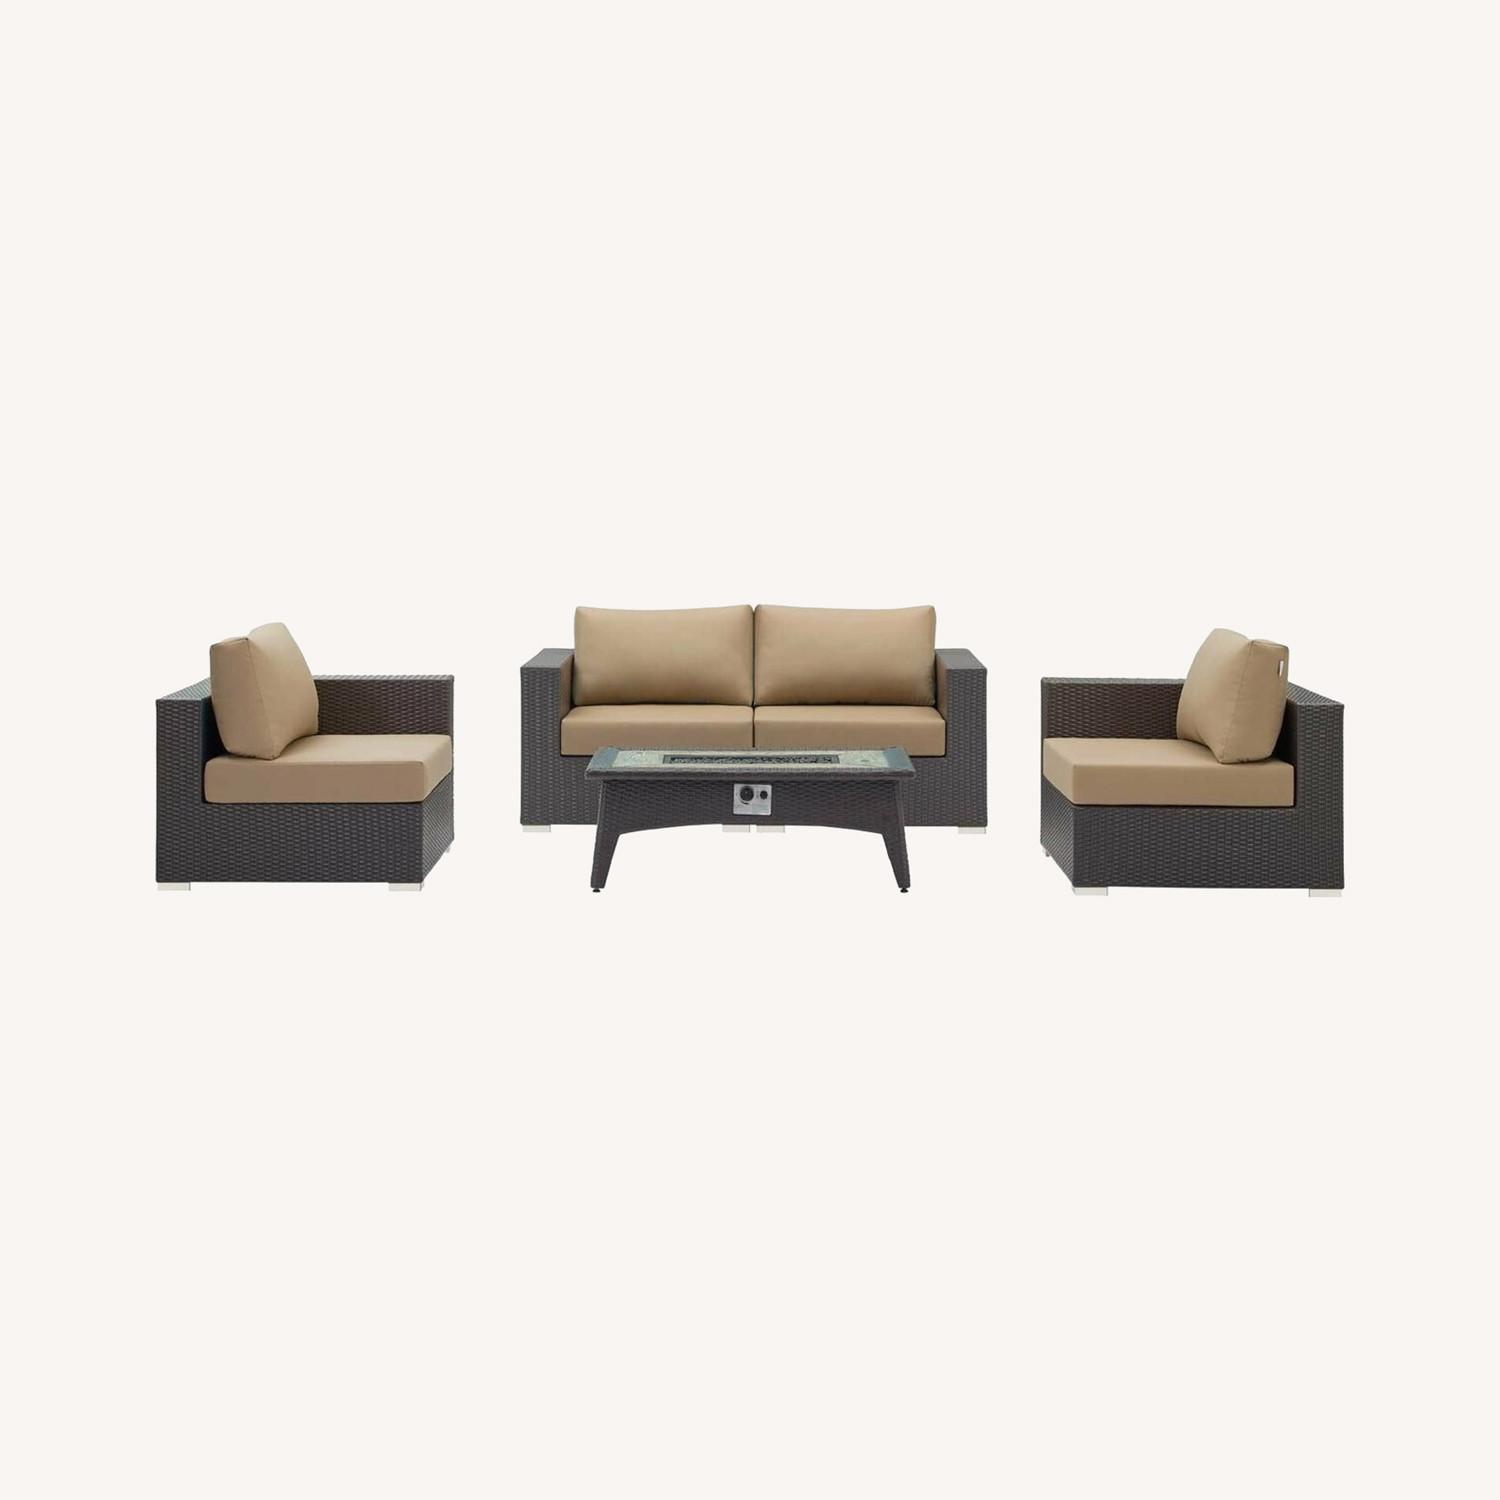 5-Piece Outdoor Sectional In Mocha Fabric Finish - image-8